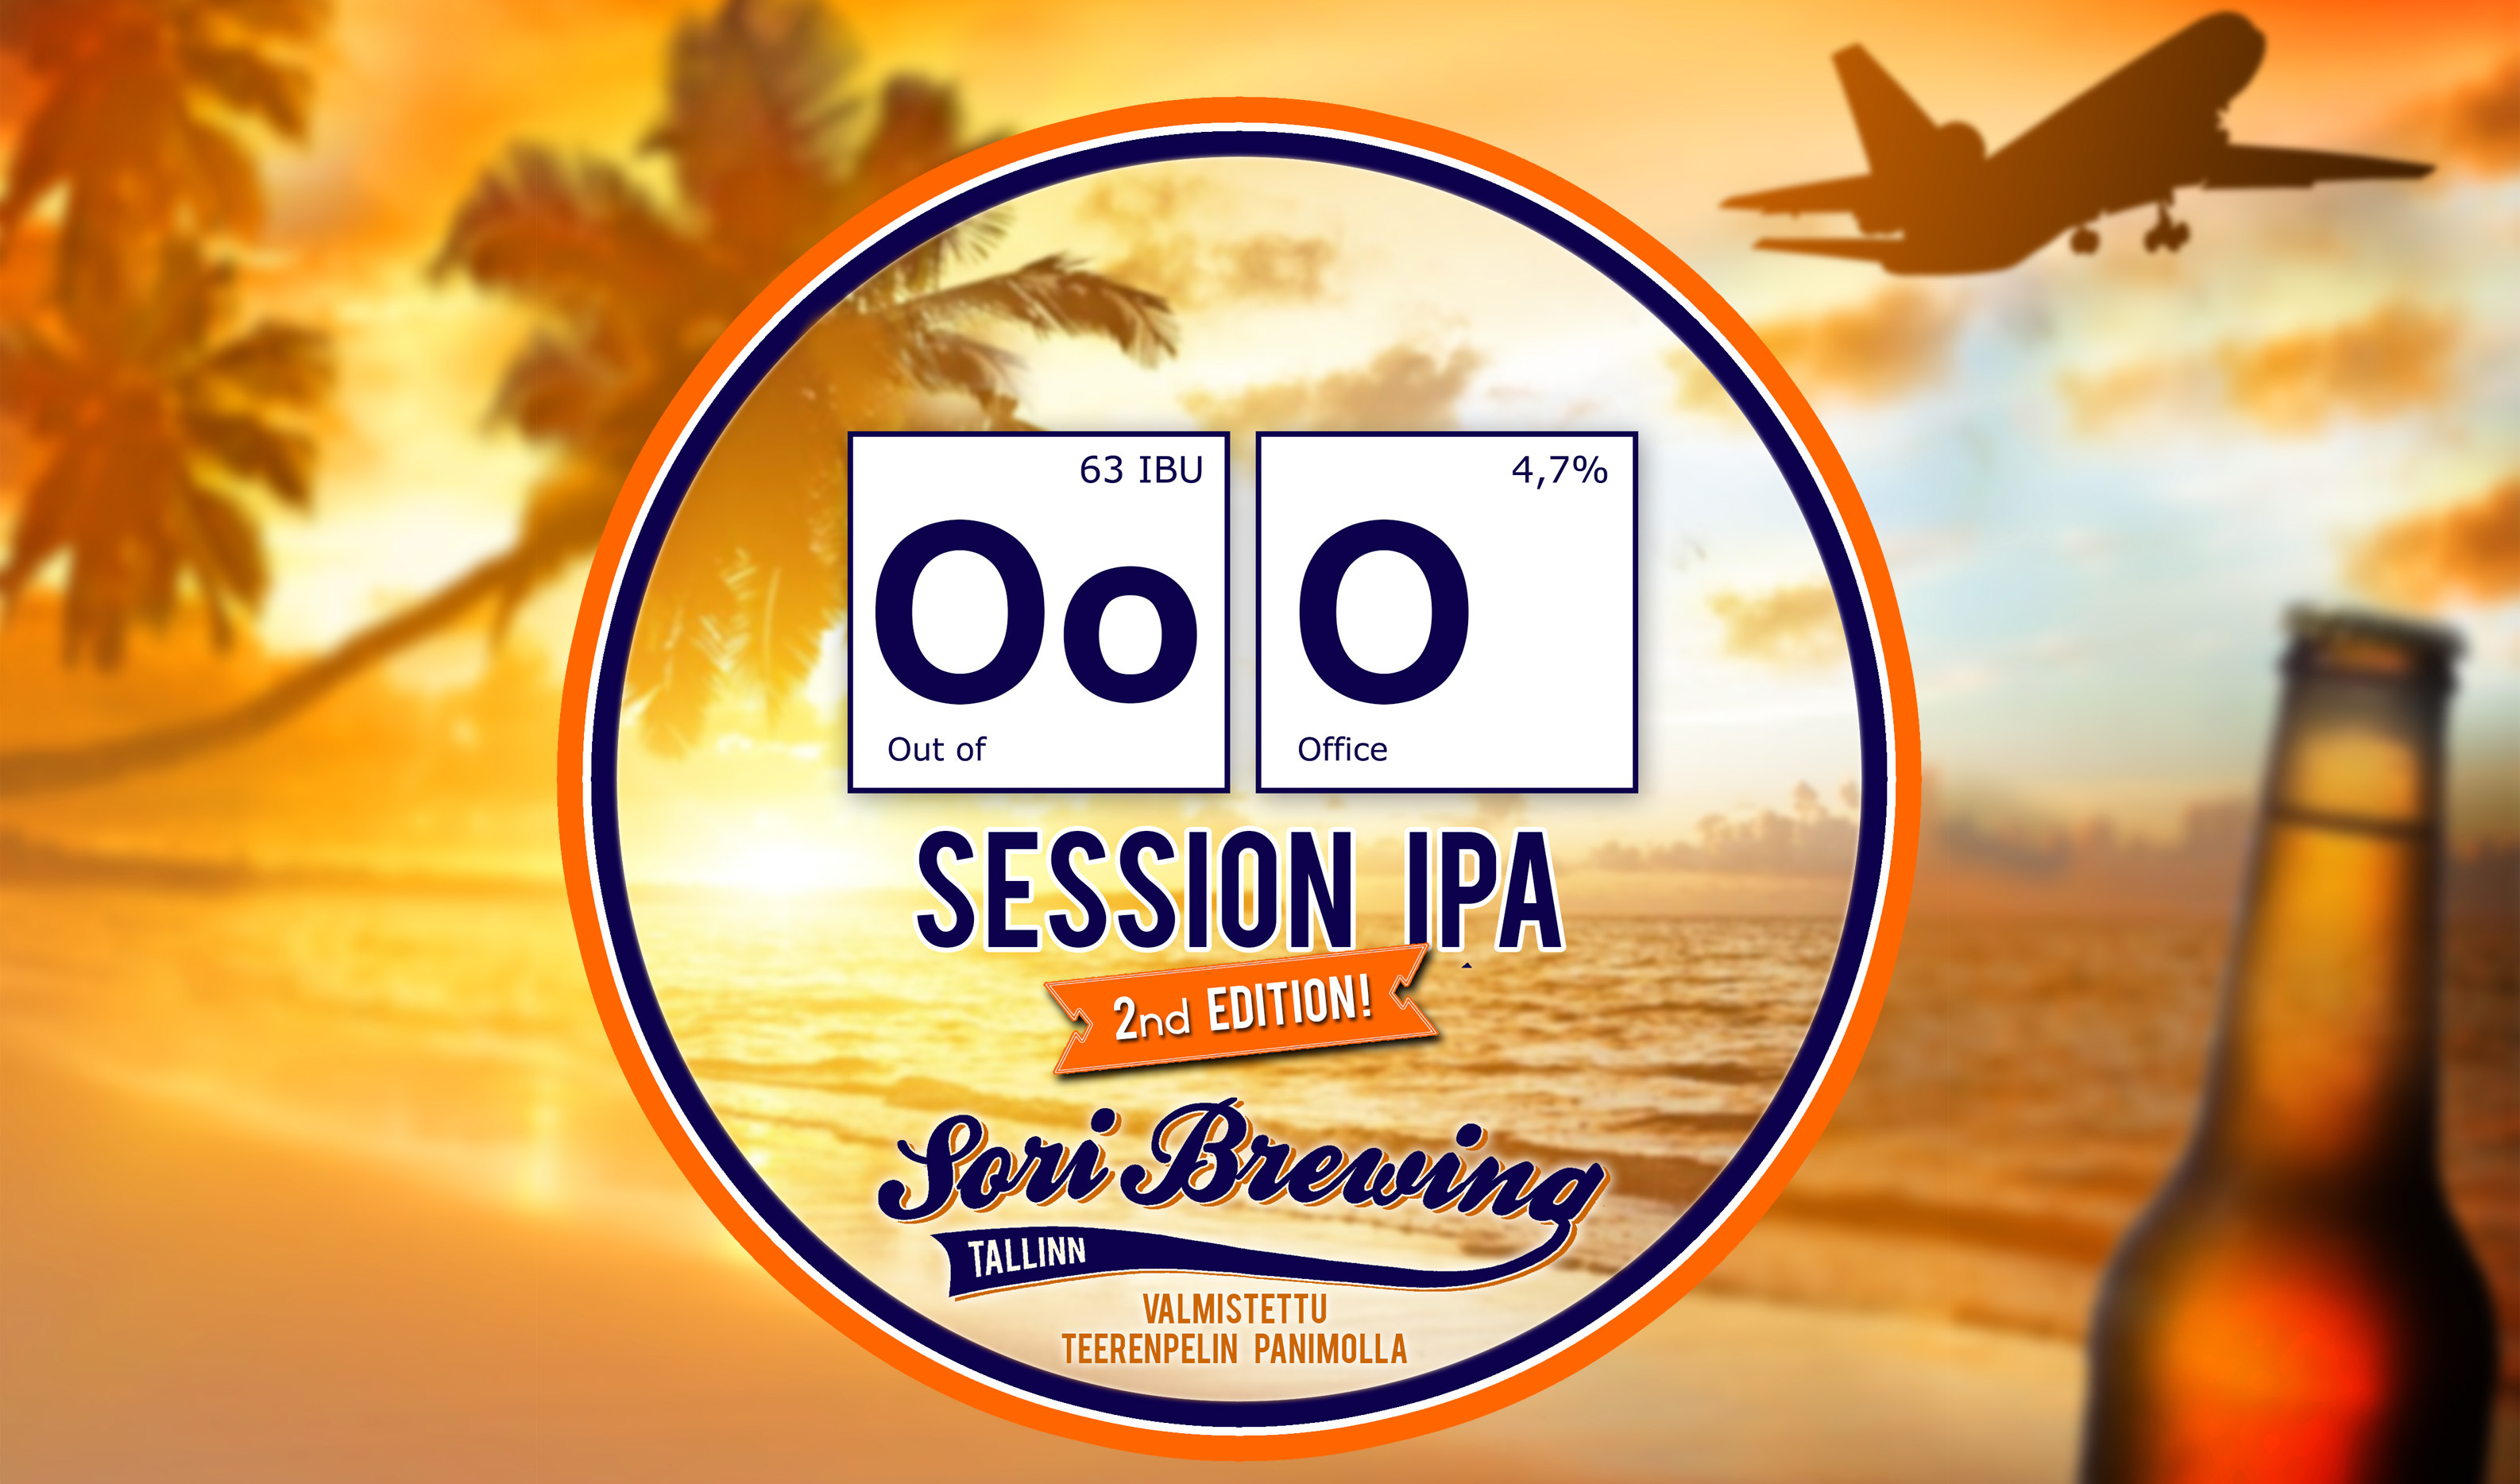 OoO Session IPA (2nd Edition)